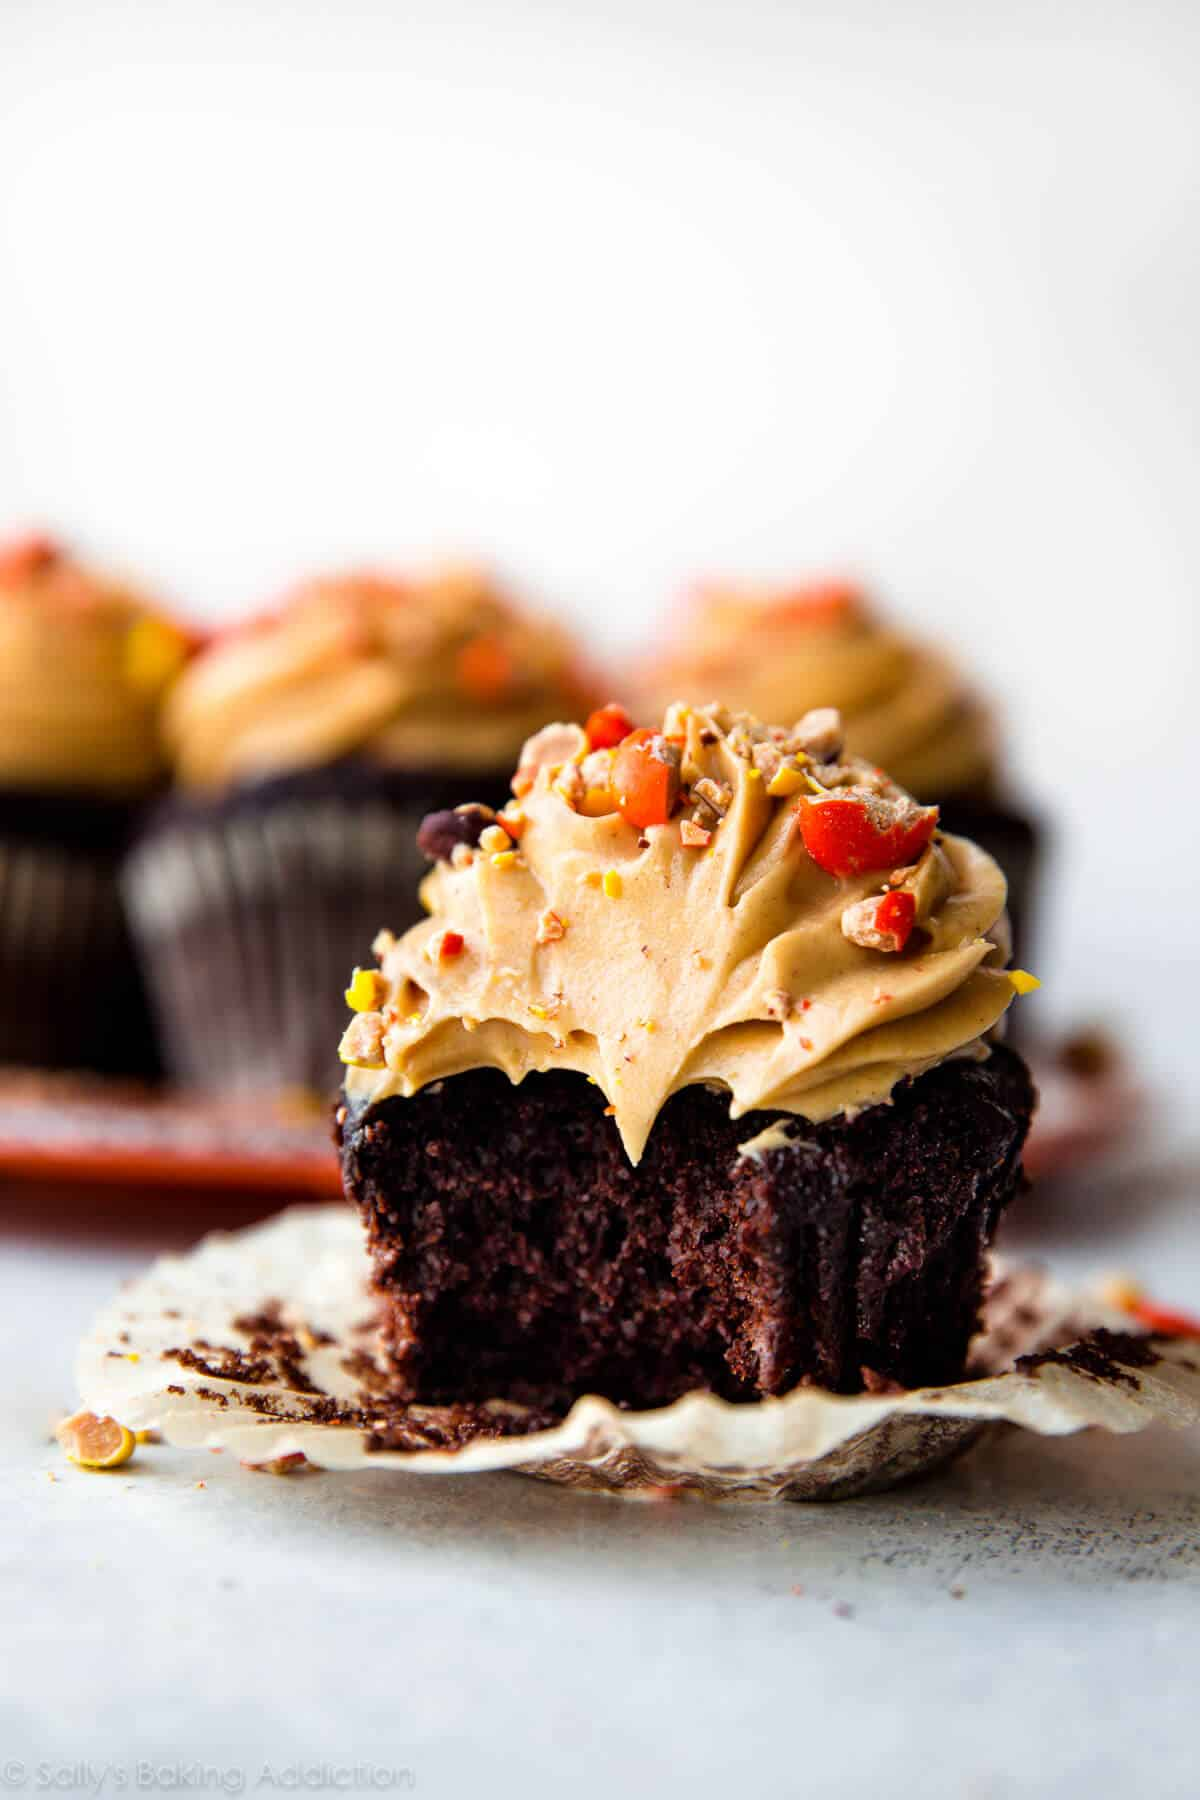 Rich, moist, and super dark chocolate cupcakes topped with creamy peanut butter frosting and Reese's Pieces! Recipe on sallysbakingaddiction.com